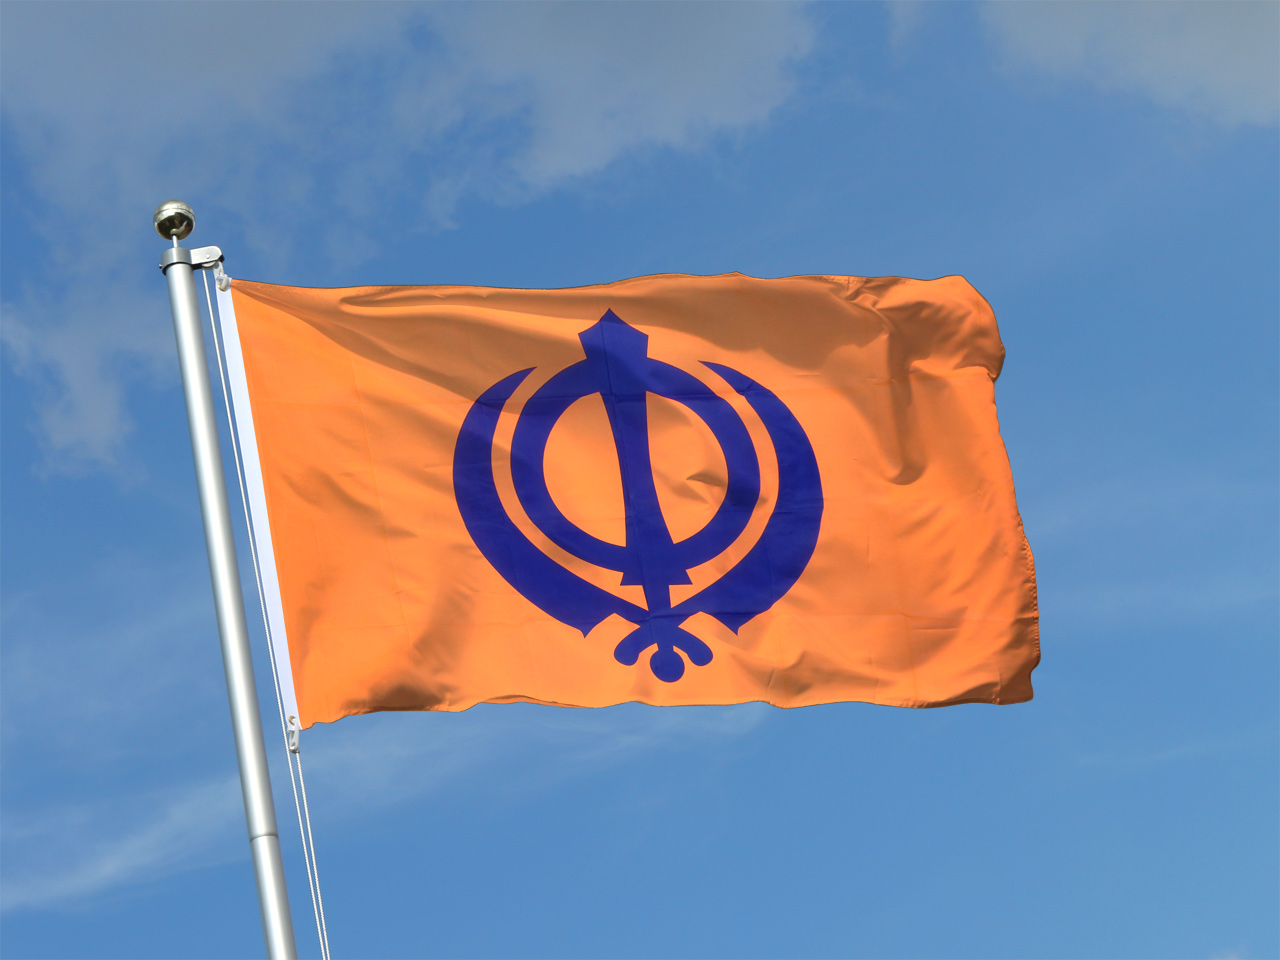 Sikhism 3x5 ft flag 90x150 cm royal flags for The flag is